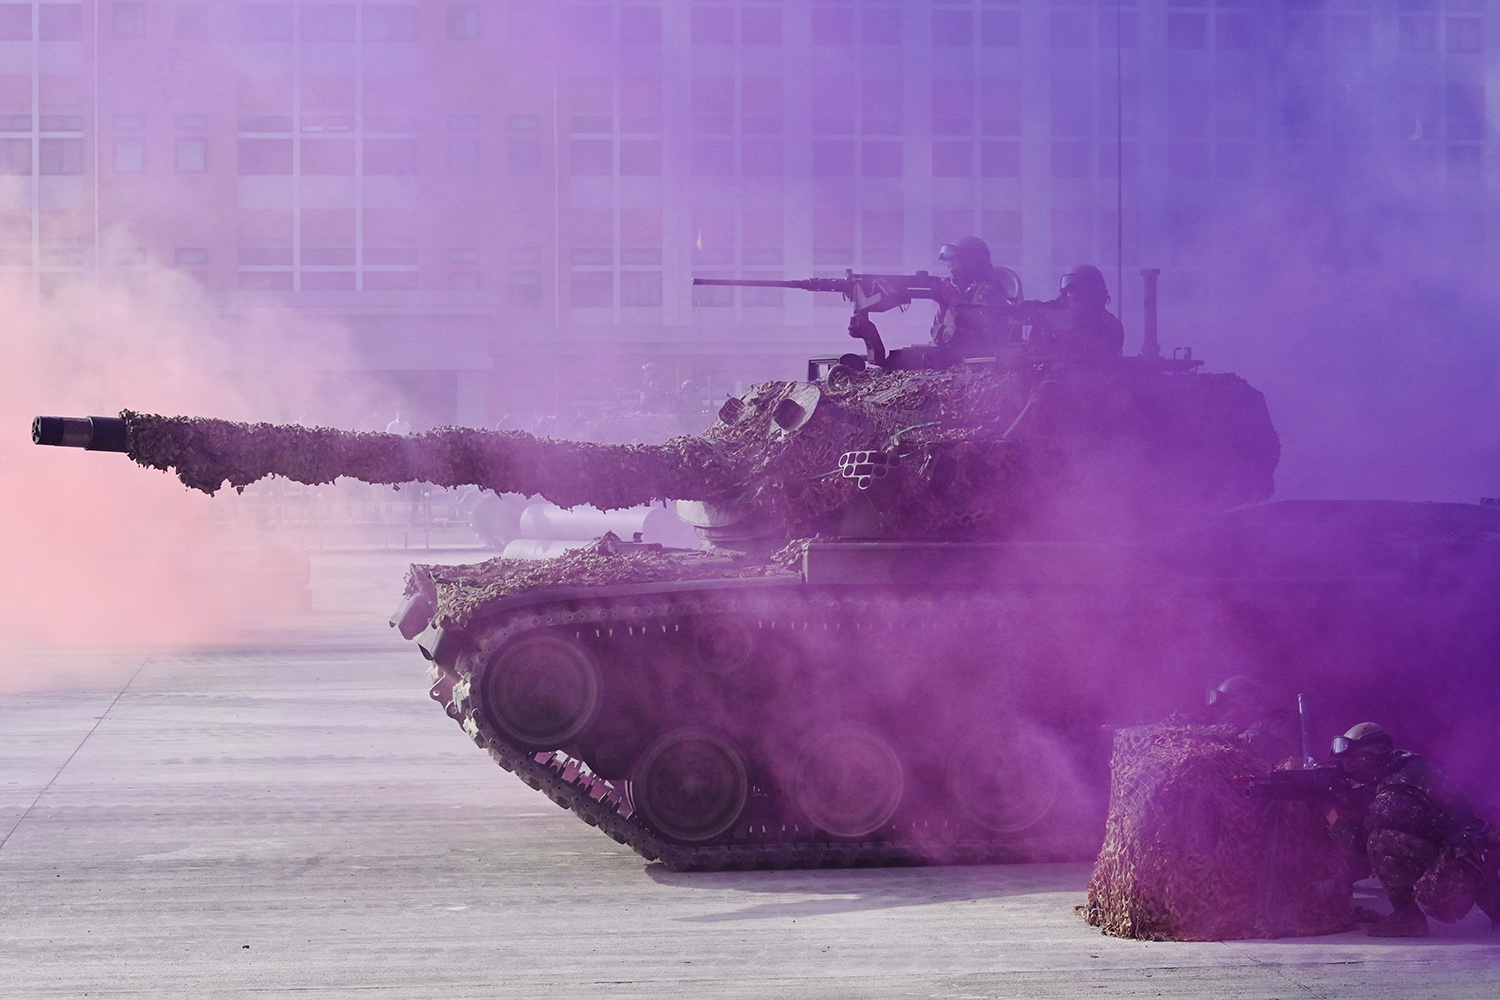 Taiwanese soldiers operate a CM-11 battle tank during an exercise at a military base in Kaohsiung, southern Taiwan, on Jan. 15. SAM YEH/AFP via Getty Images